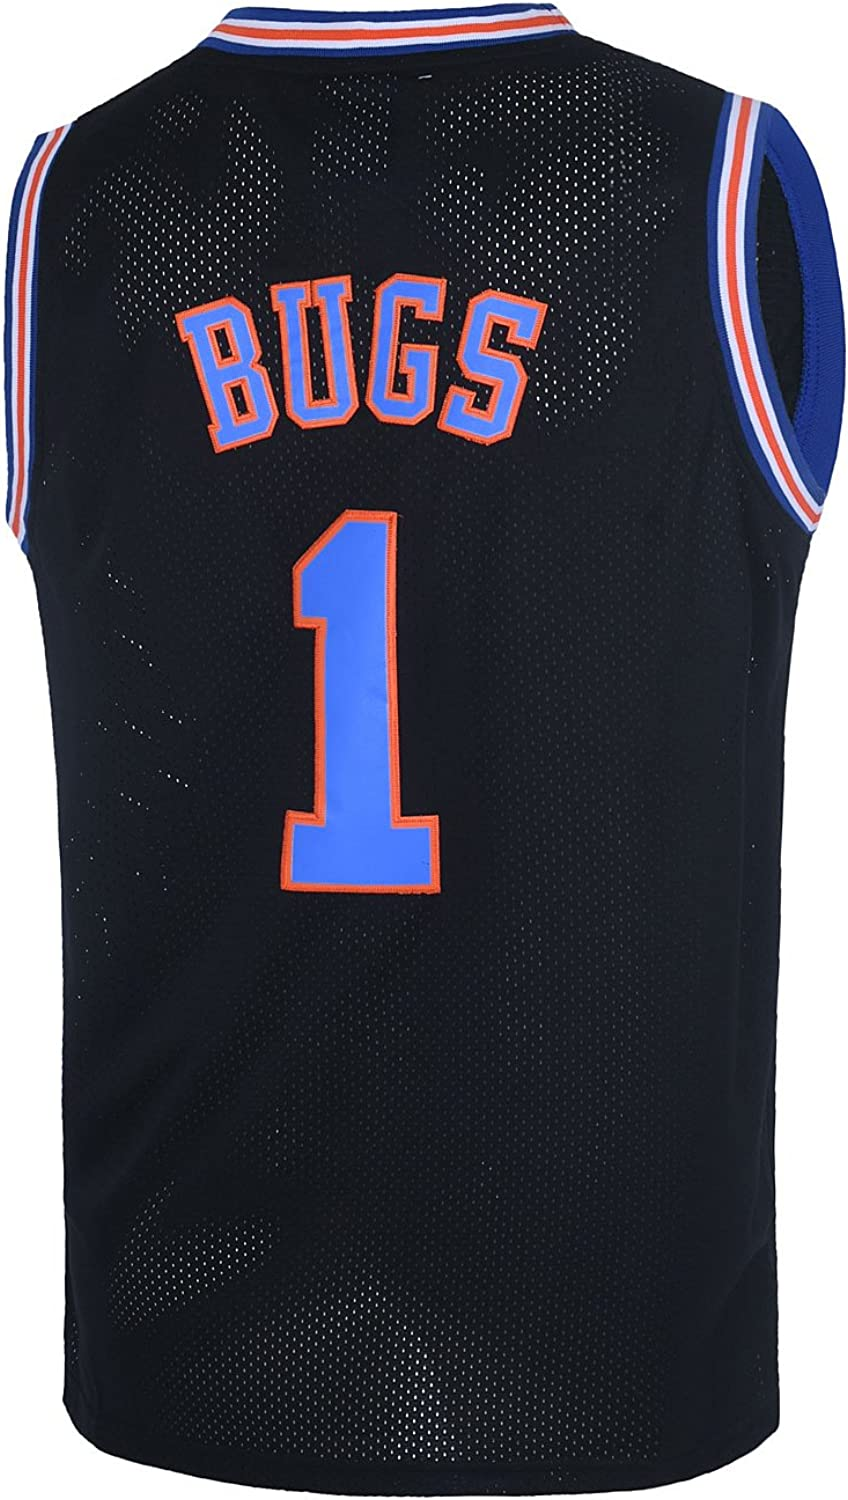 TUEIKGU Bugs 1 Space Men's Movie Jersey Basketball Jersey S-XXL White/Black/Blue